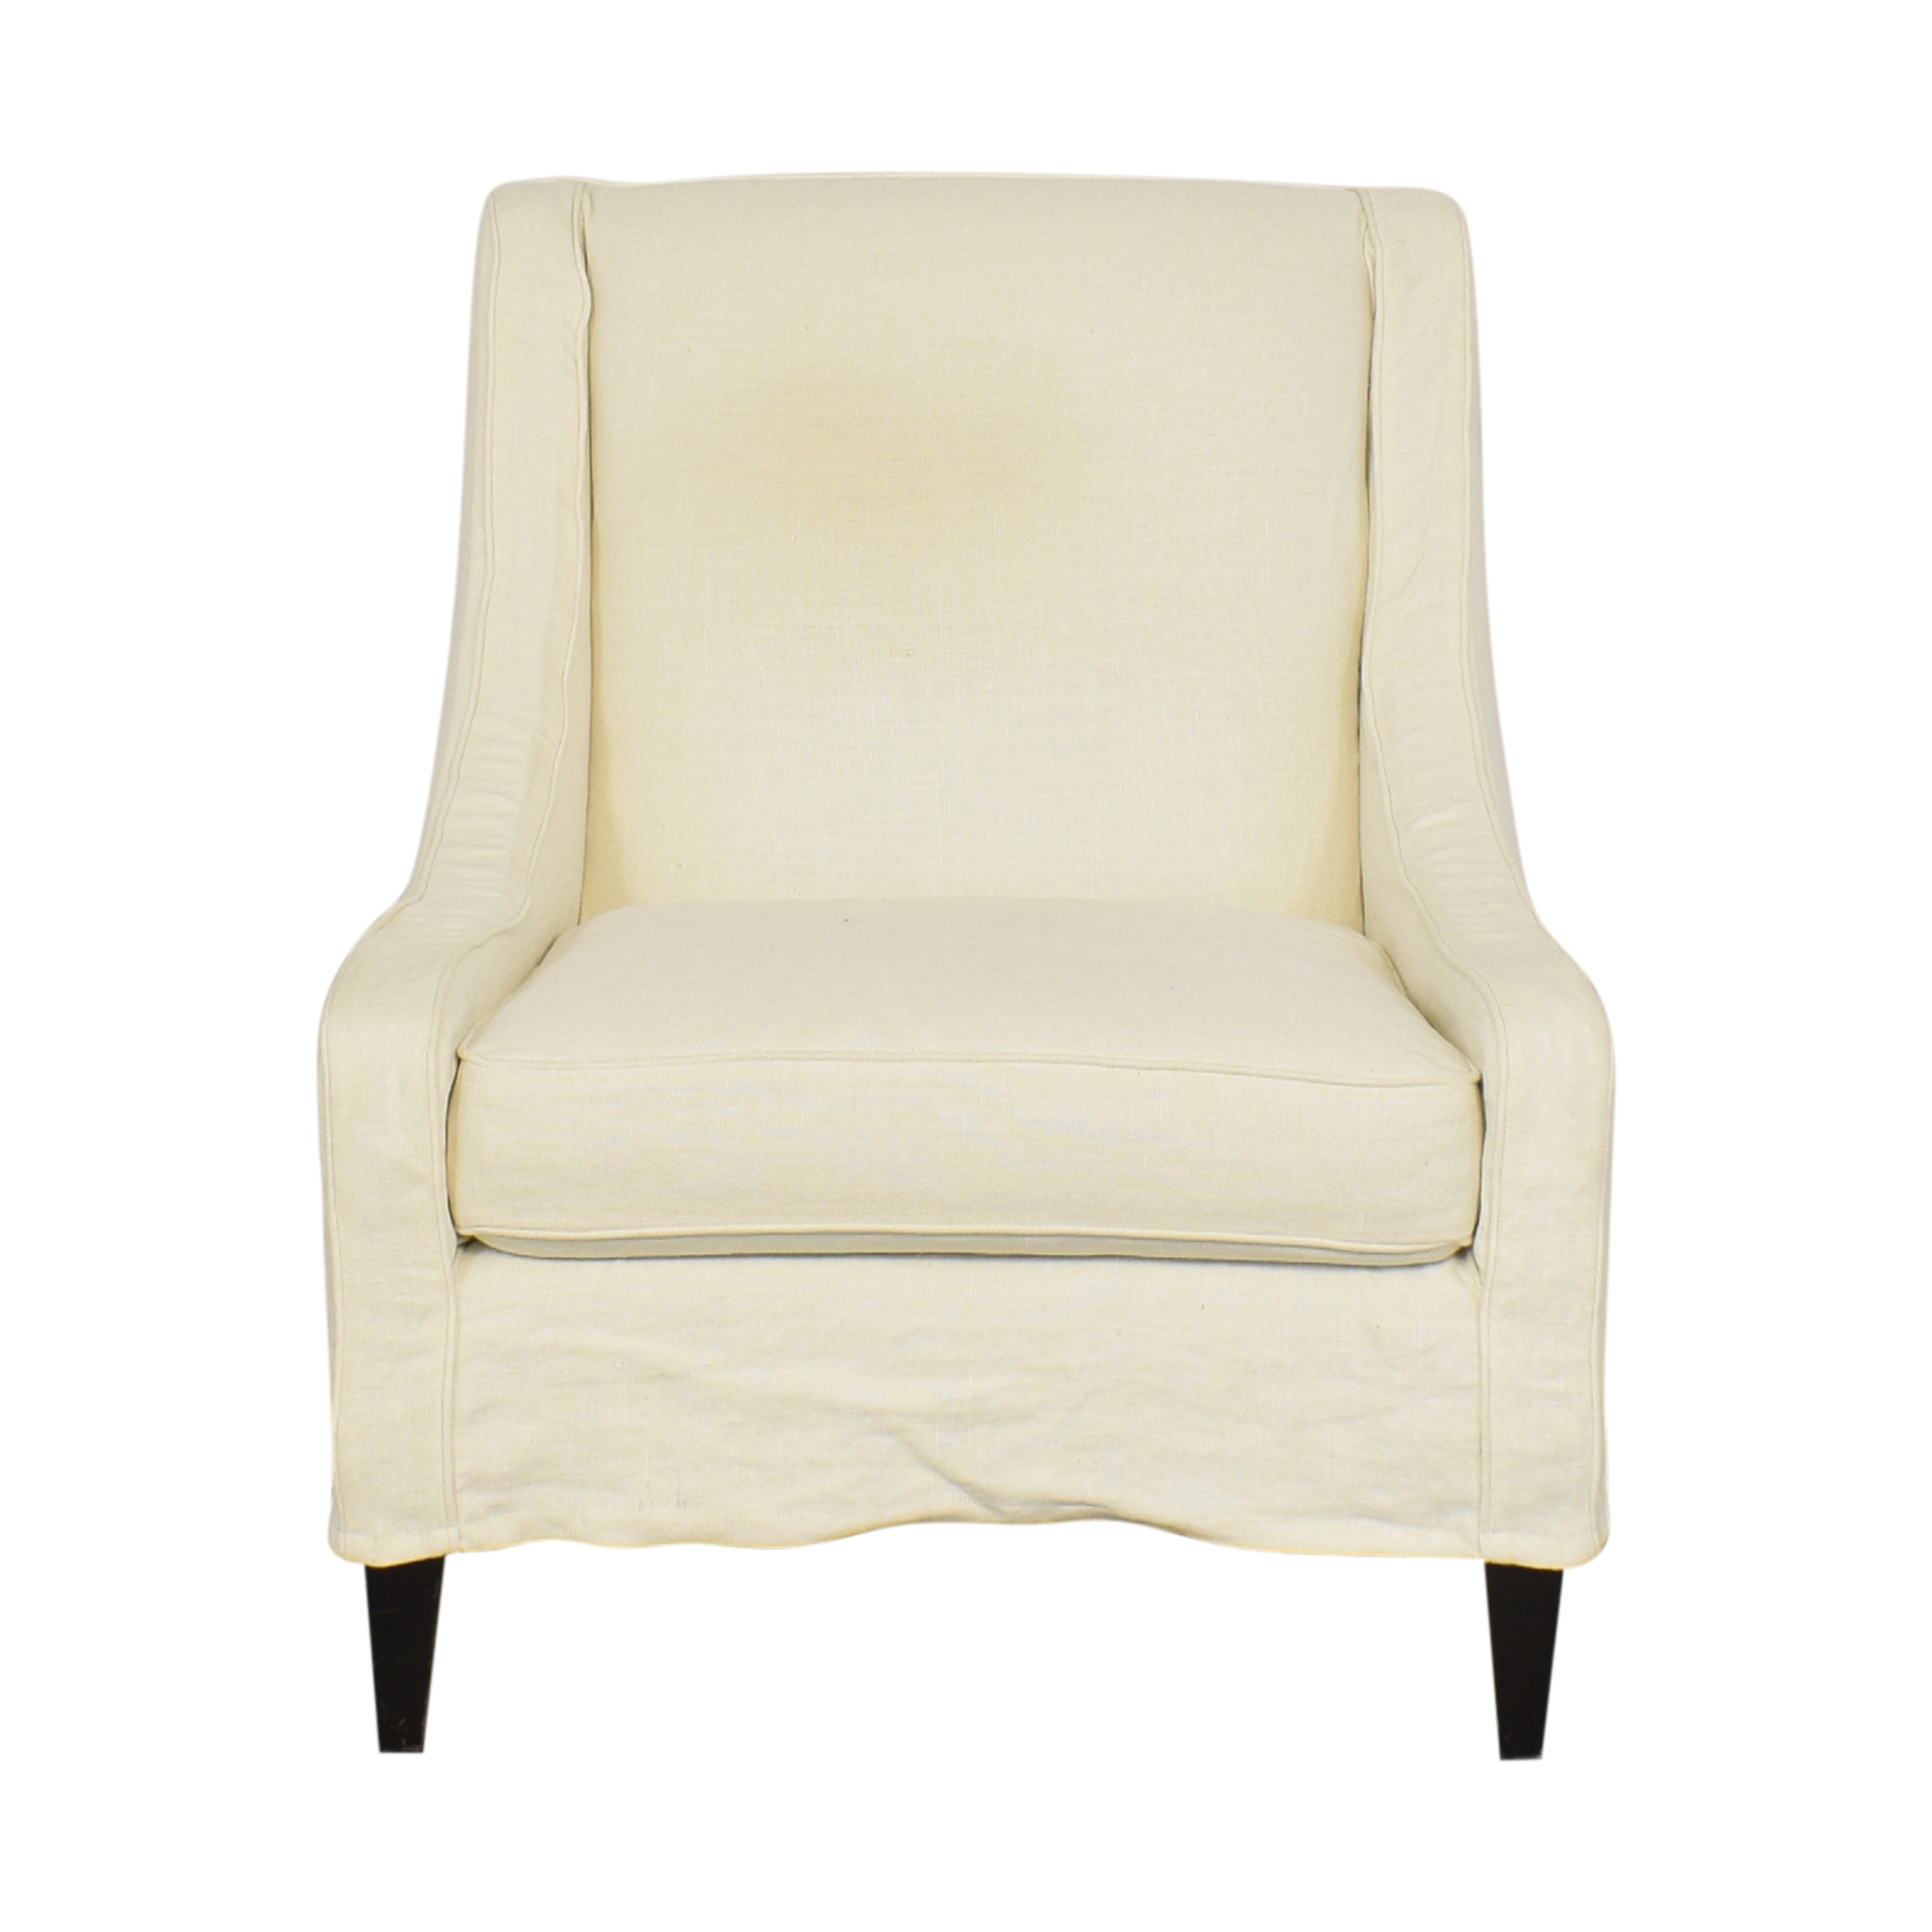 Crate & Barrel Crate & Barrel Slipcovered Accent Chair nj